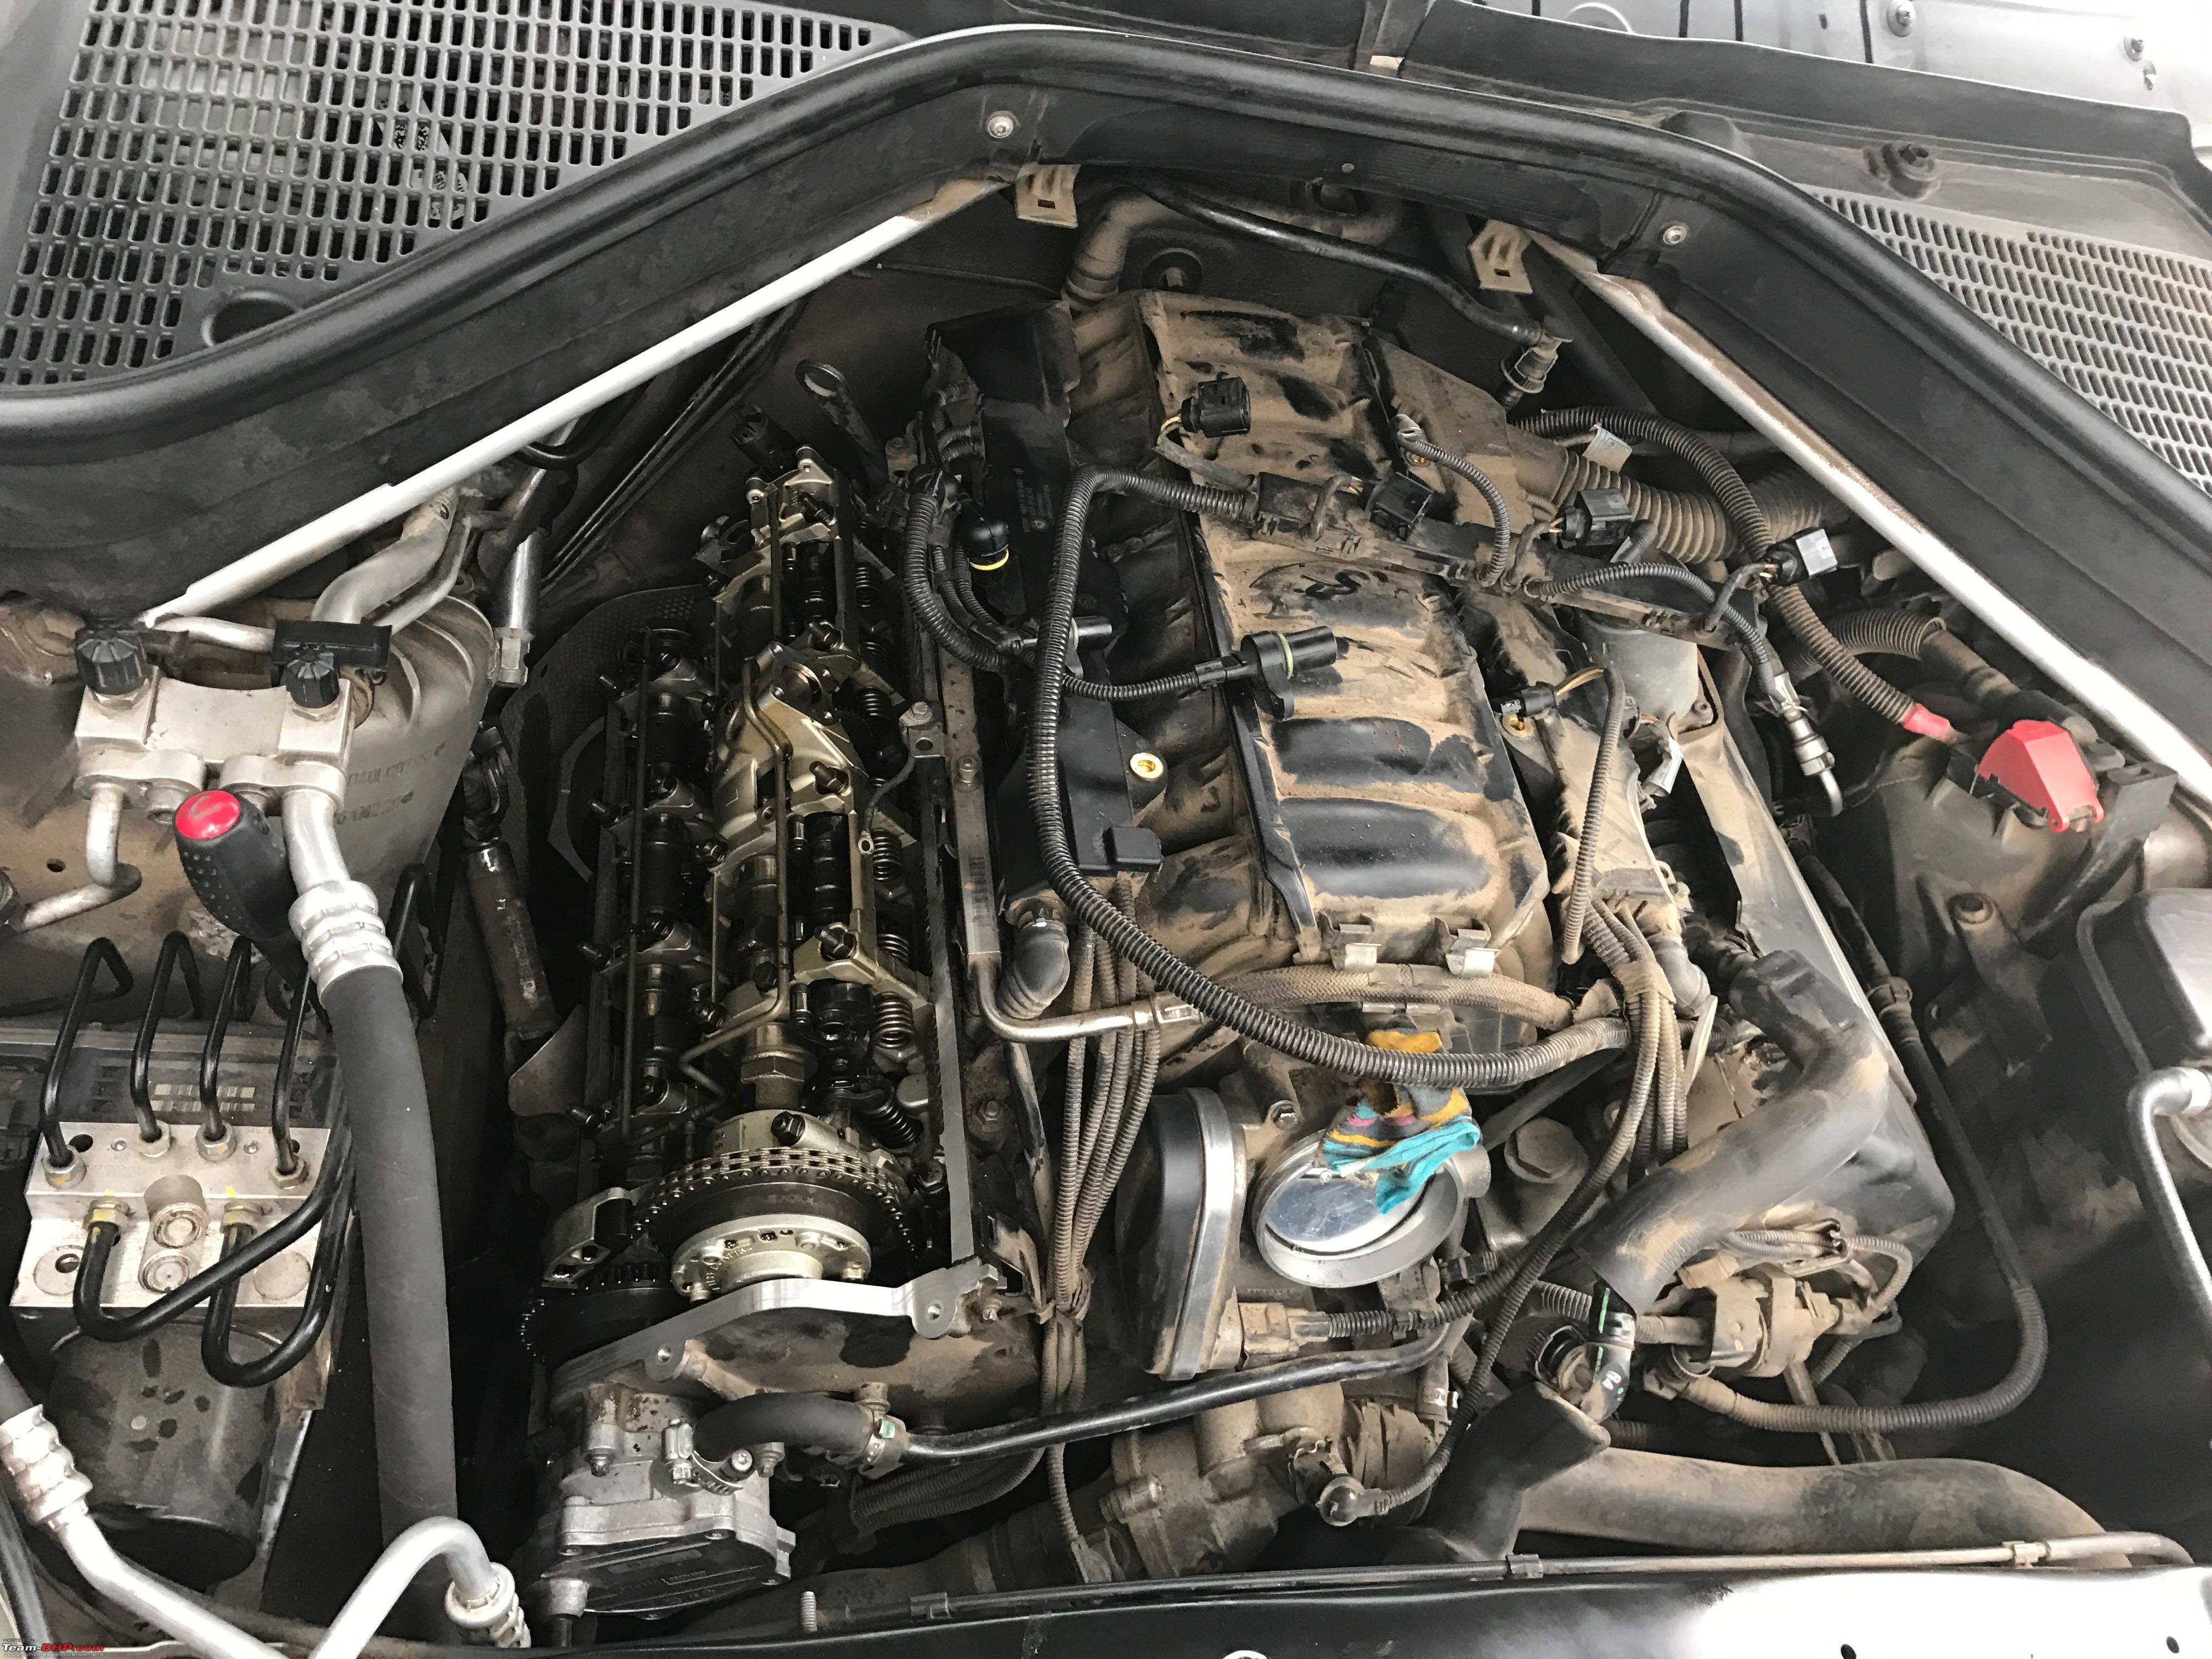 E70 Engine Diagram Wiring Library Bmw Life With A 2009 X5 48is Img 6228